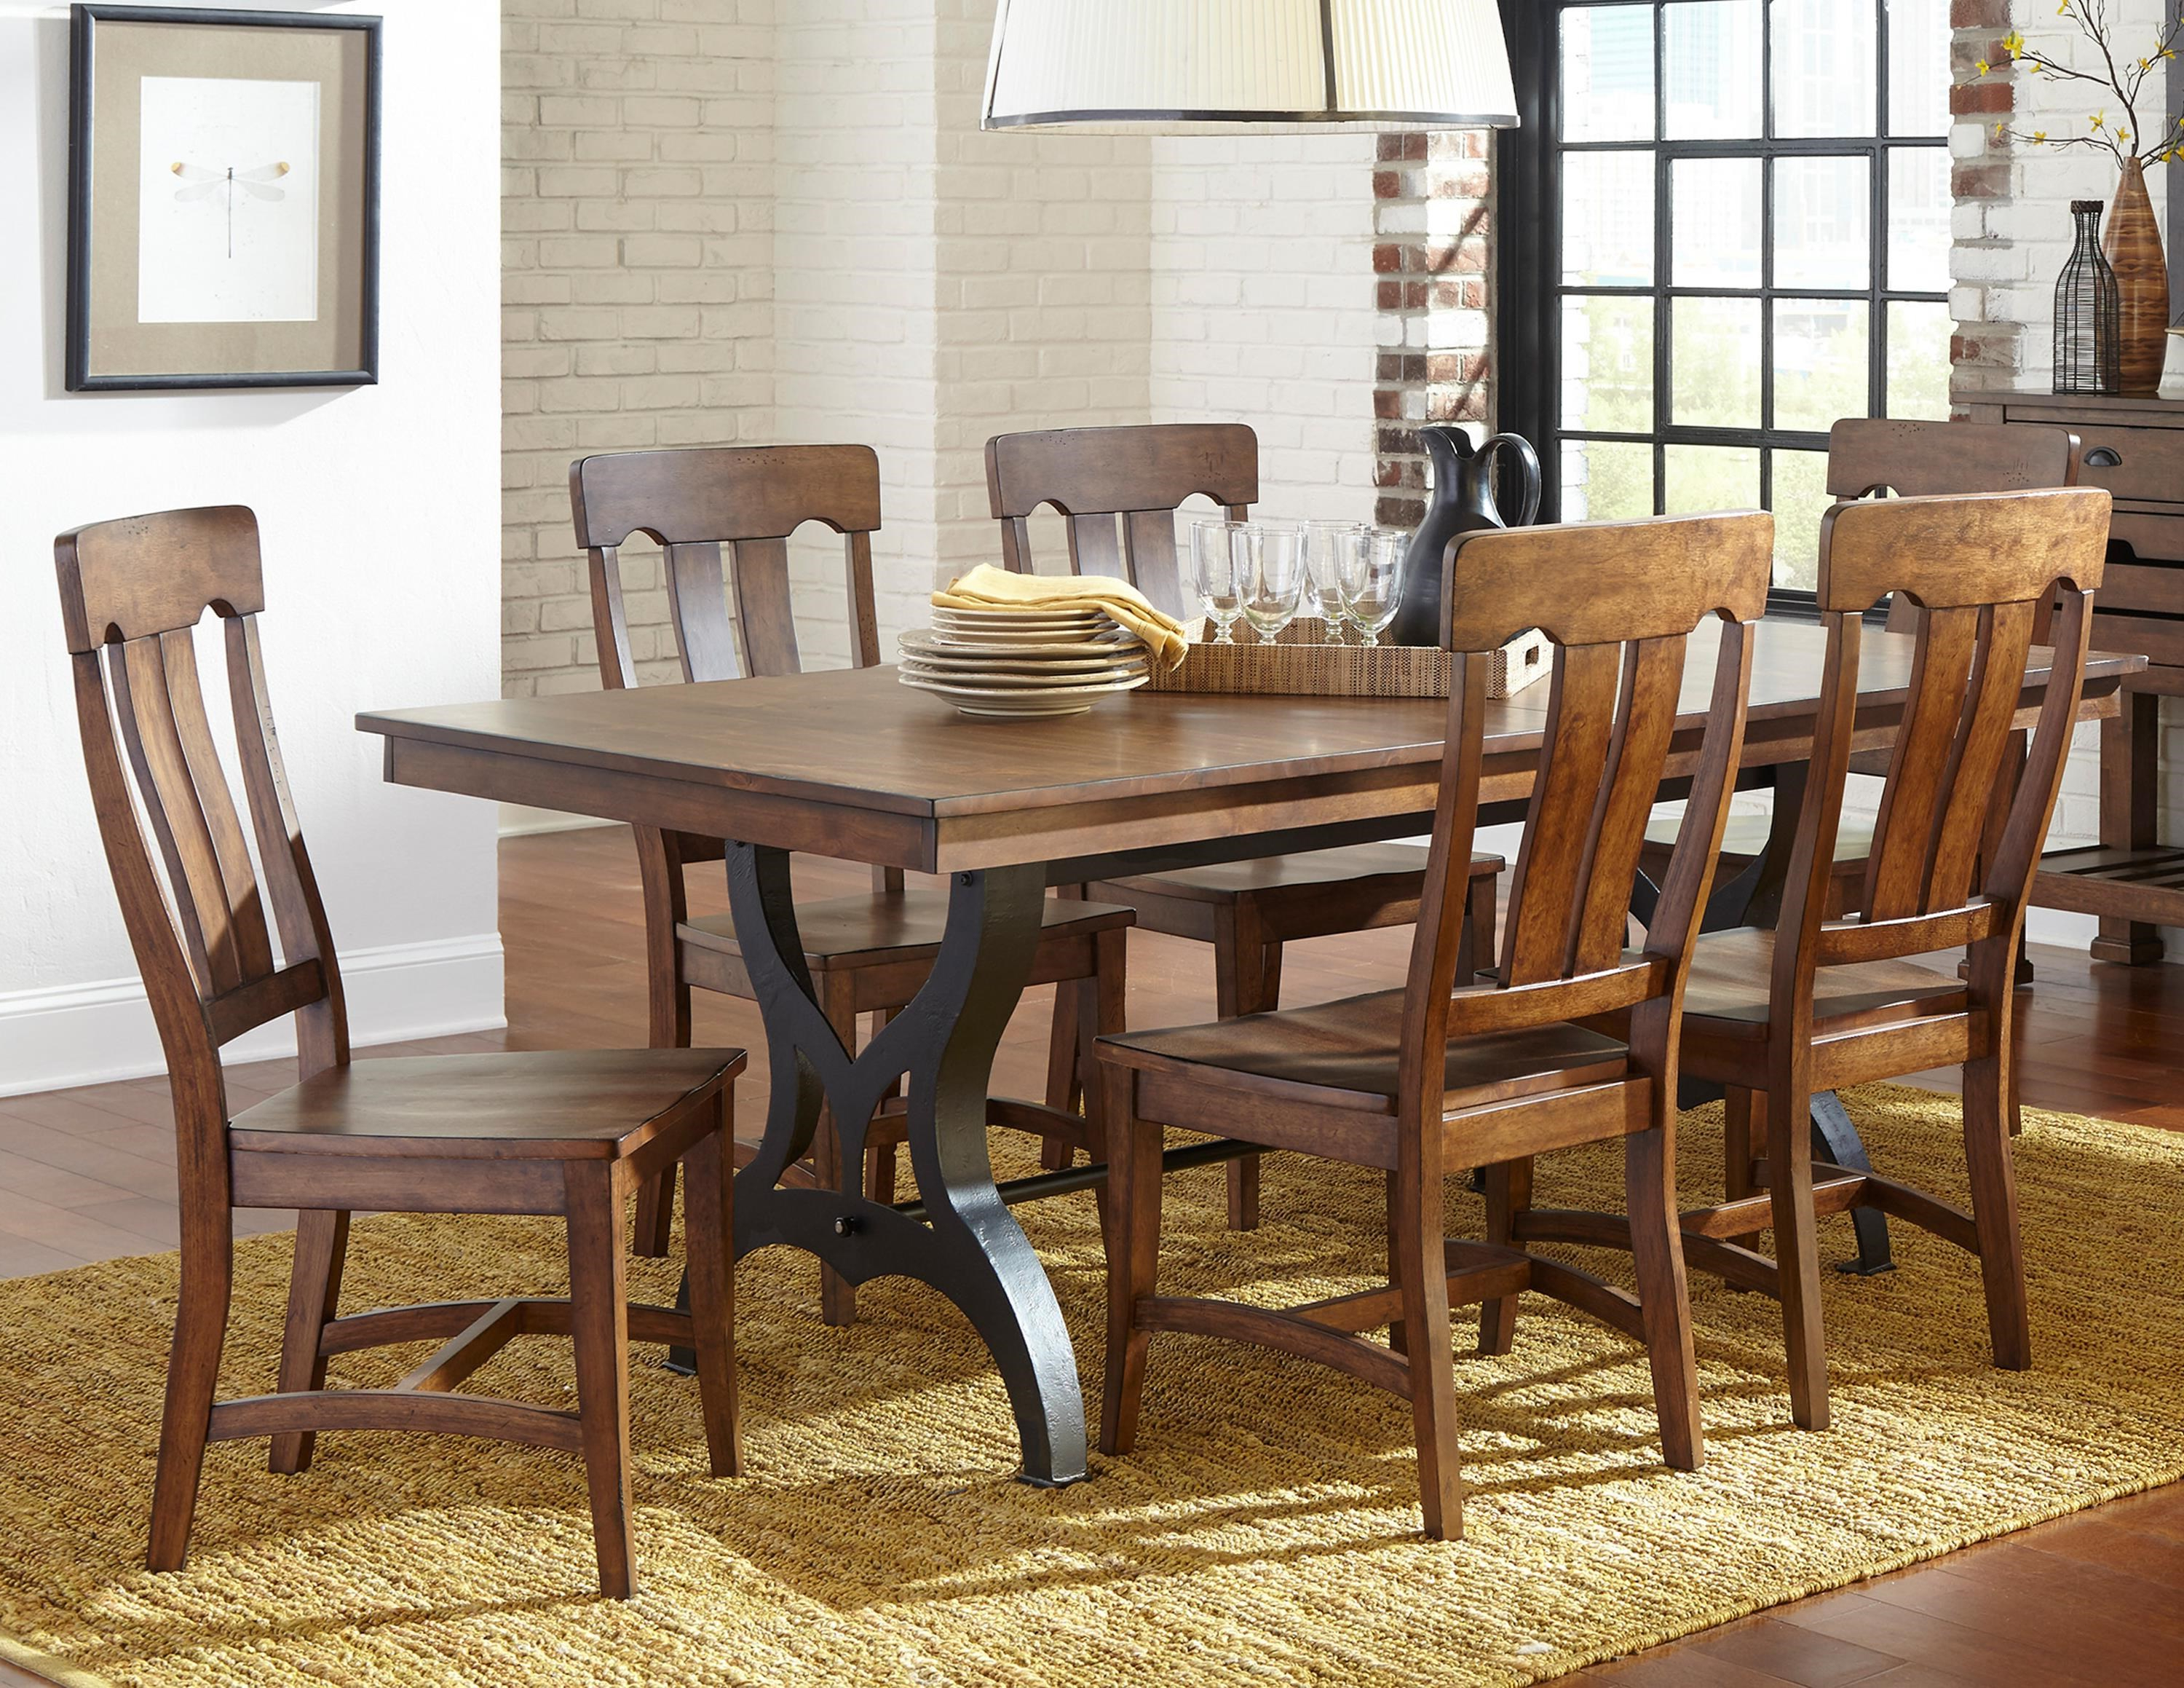 5 Piece Breakfast Table Sets & Vanity Pub Dining Sets In Manhattan Intended For Most Recent Noyes 5 Piece Dining Sets (View 6 of 25)